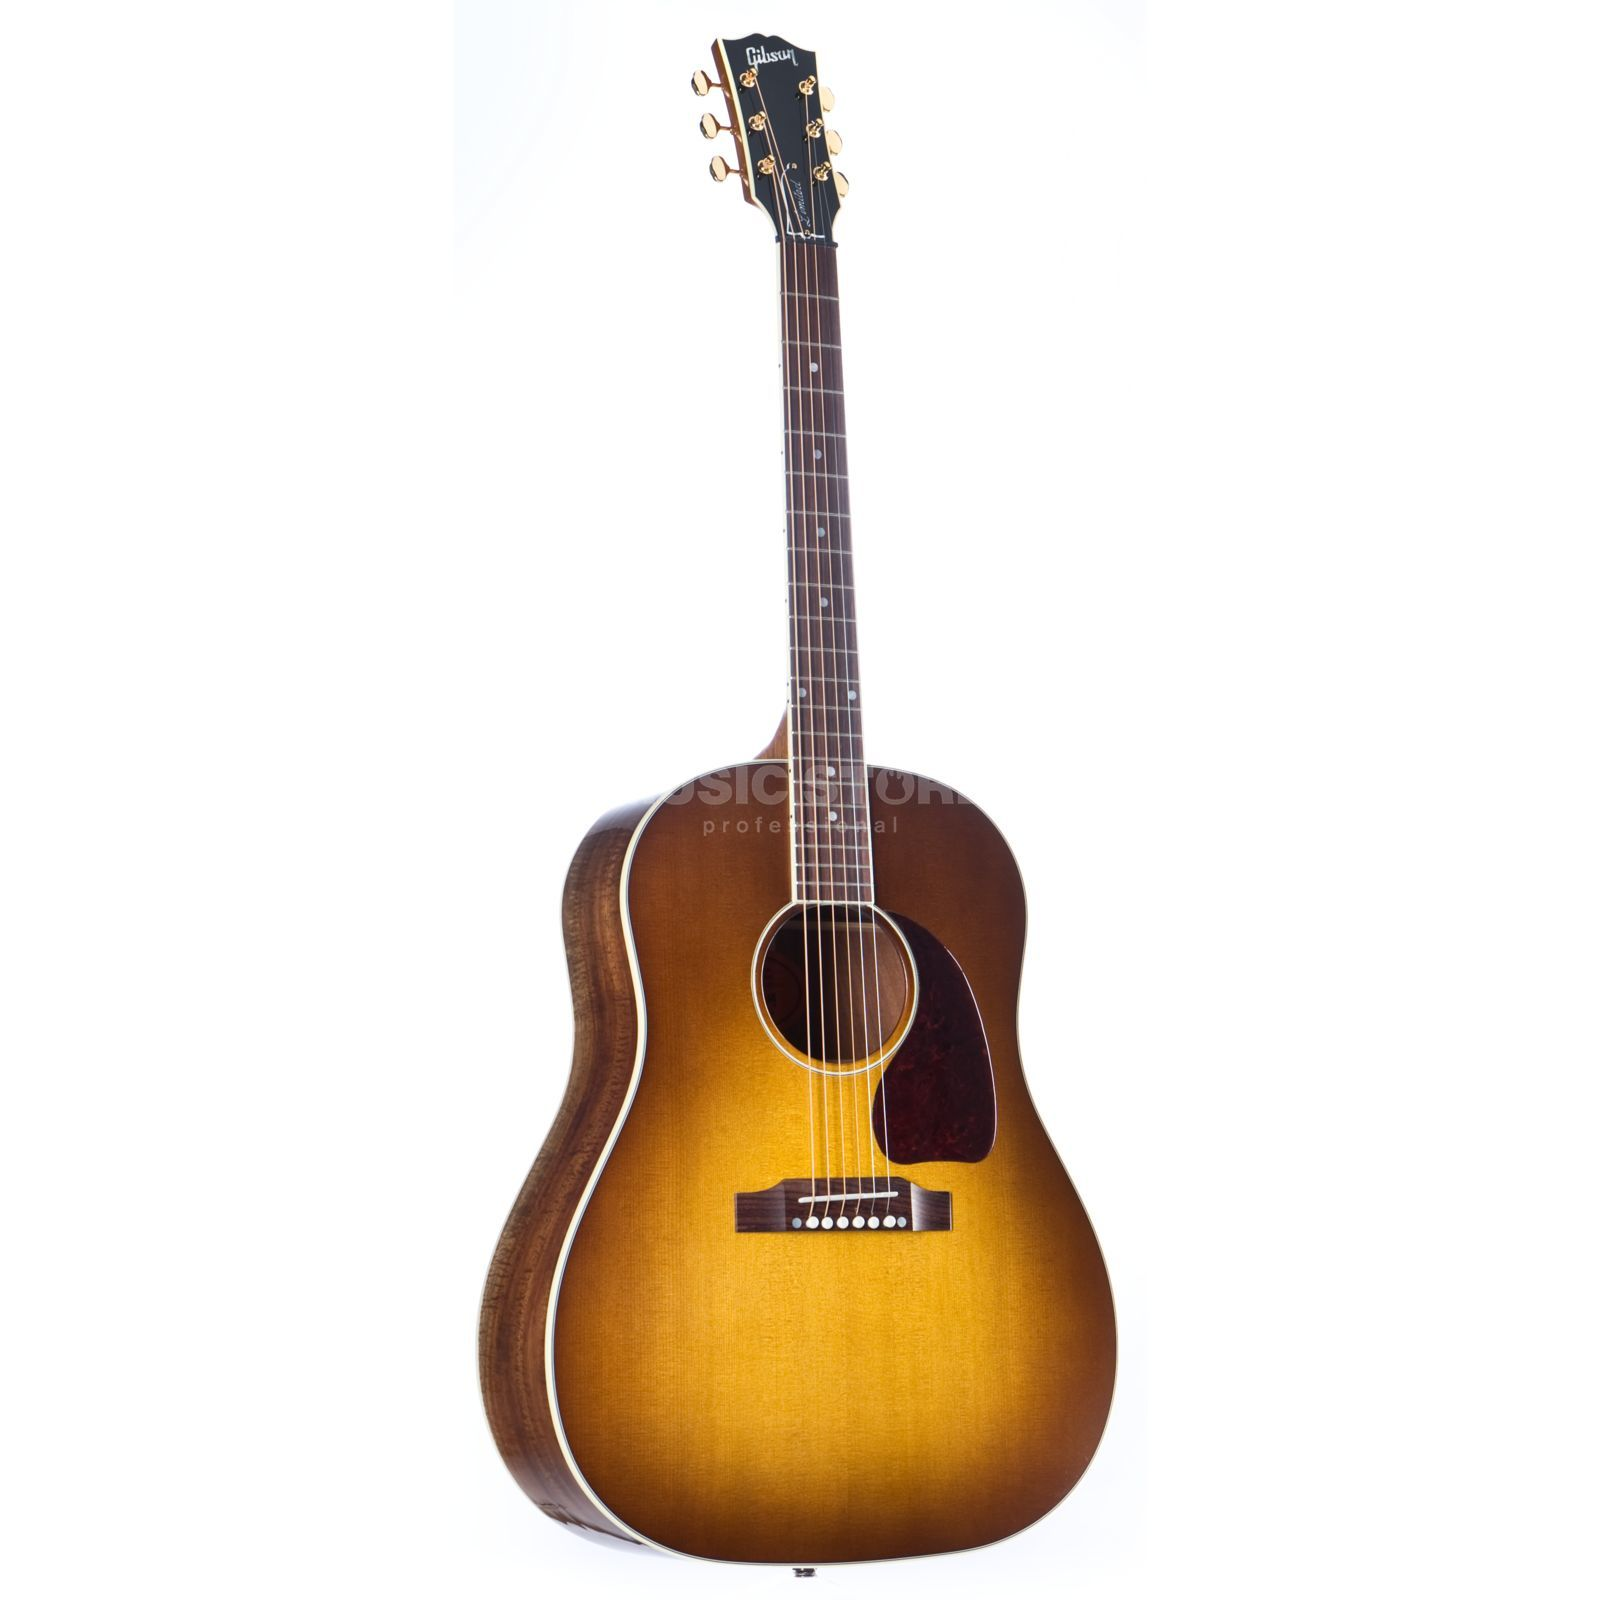 Gibson J-45 Koa Limited Edition Product Image